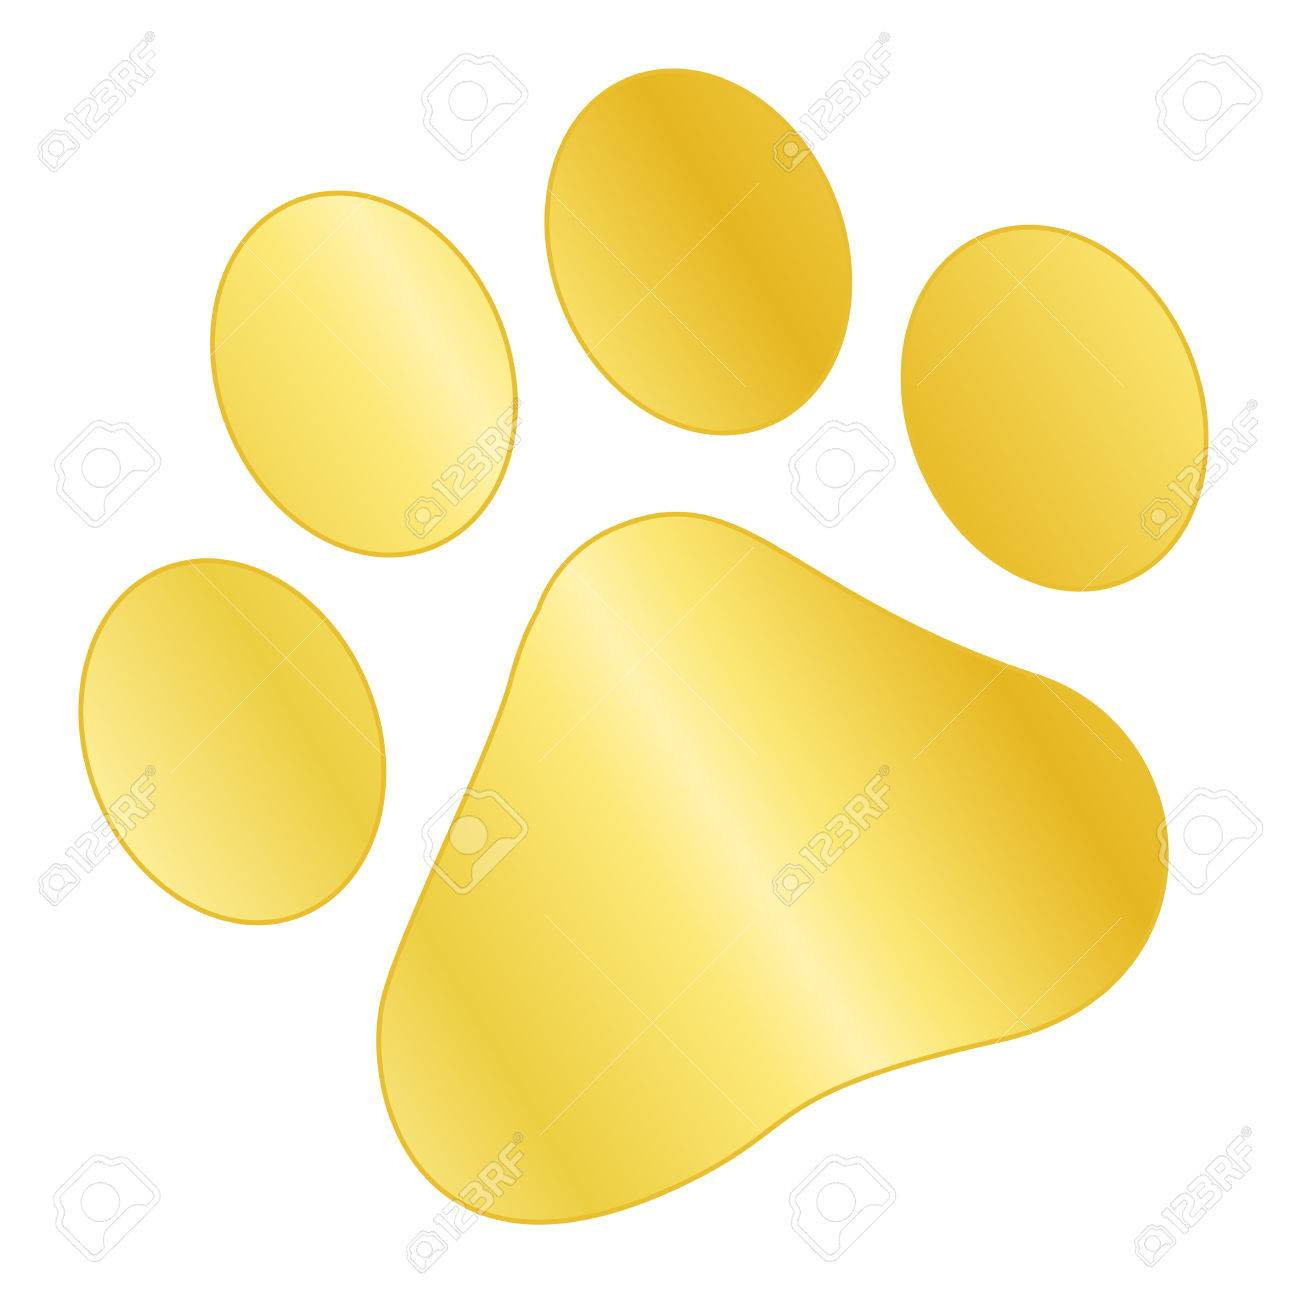 Gold / golden paw print isolated on white background.